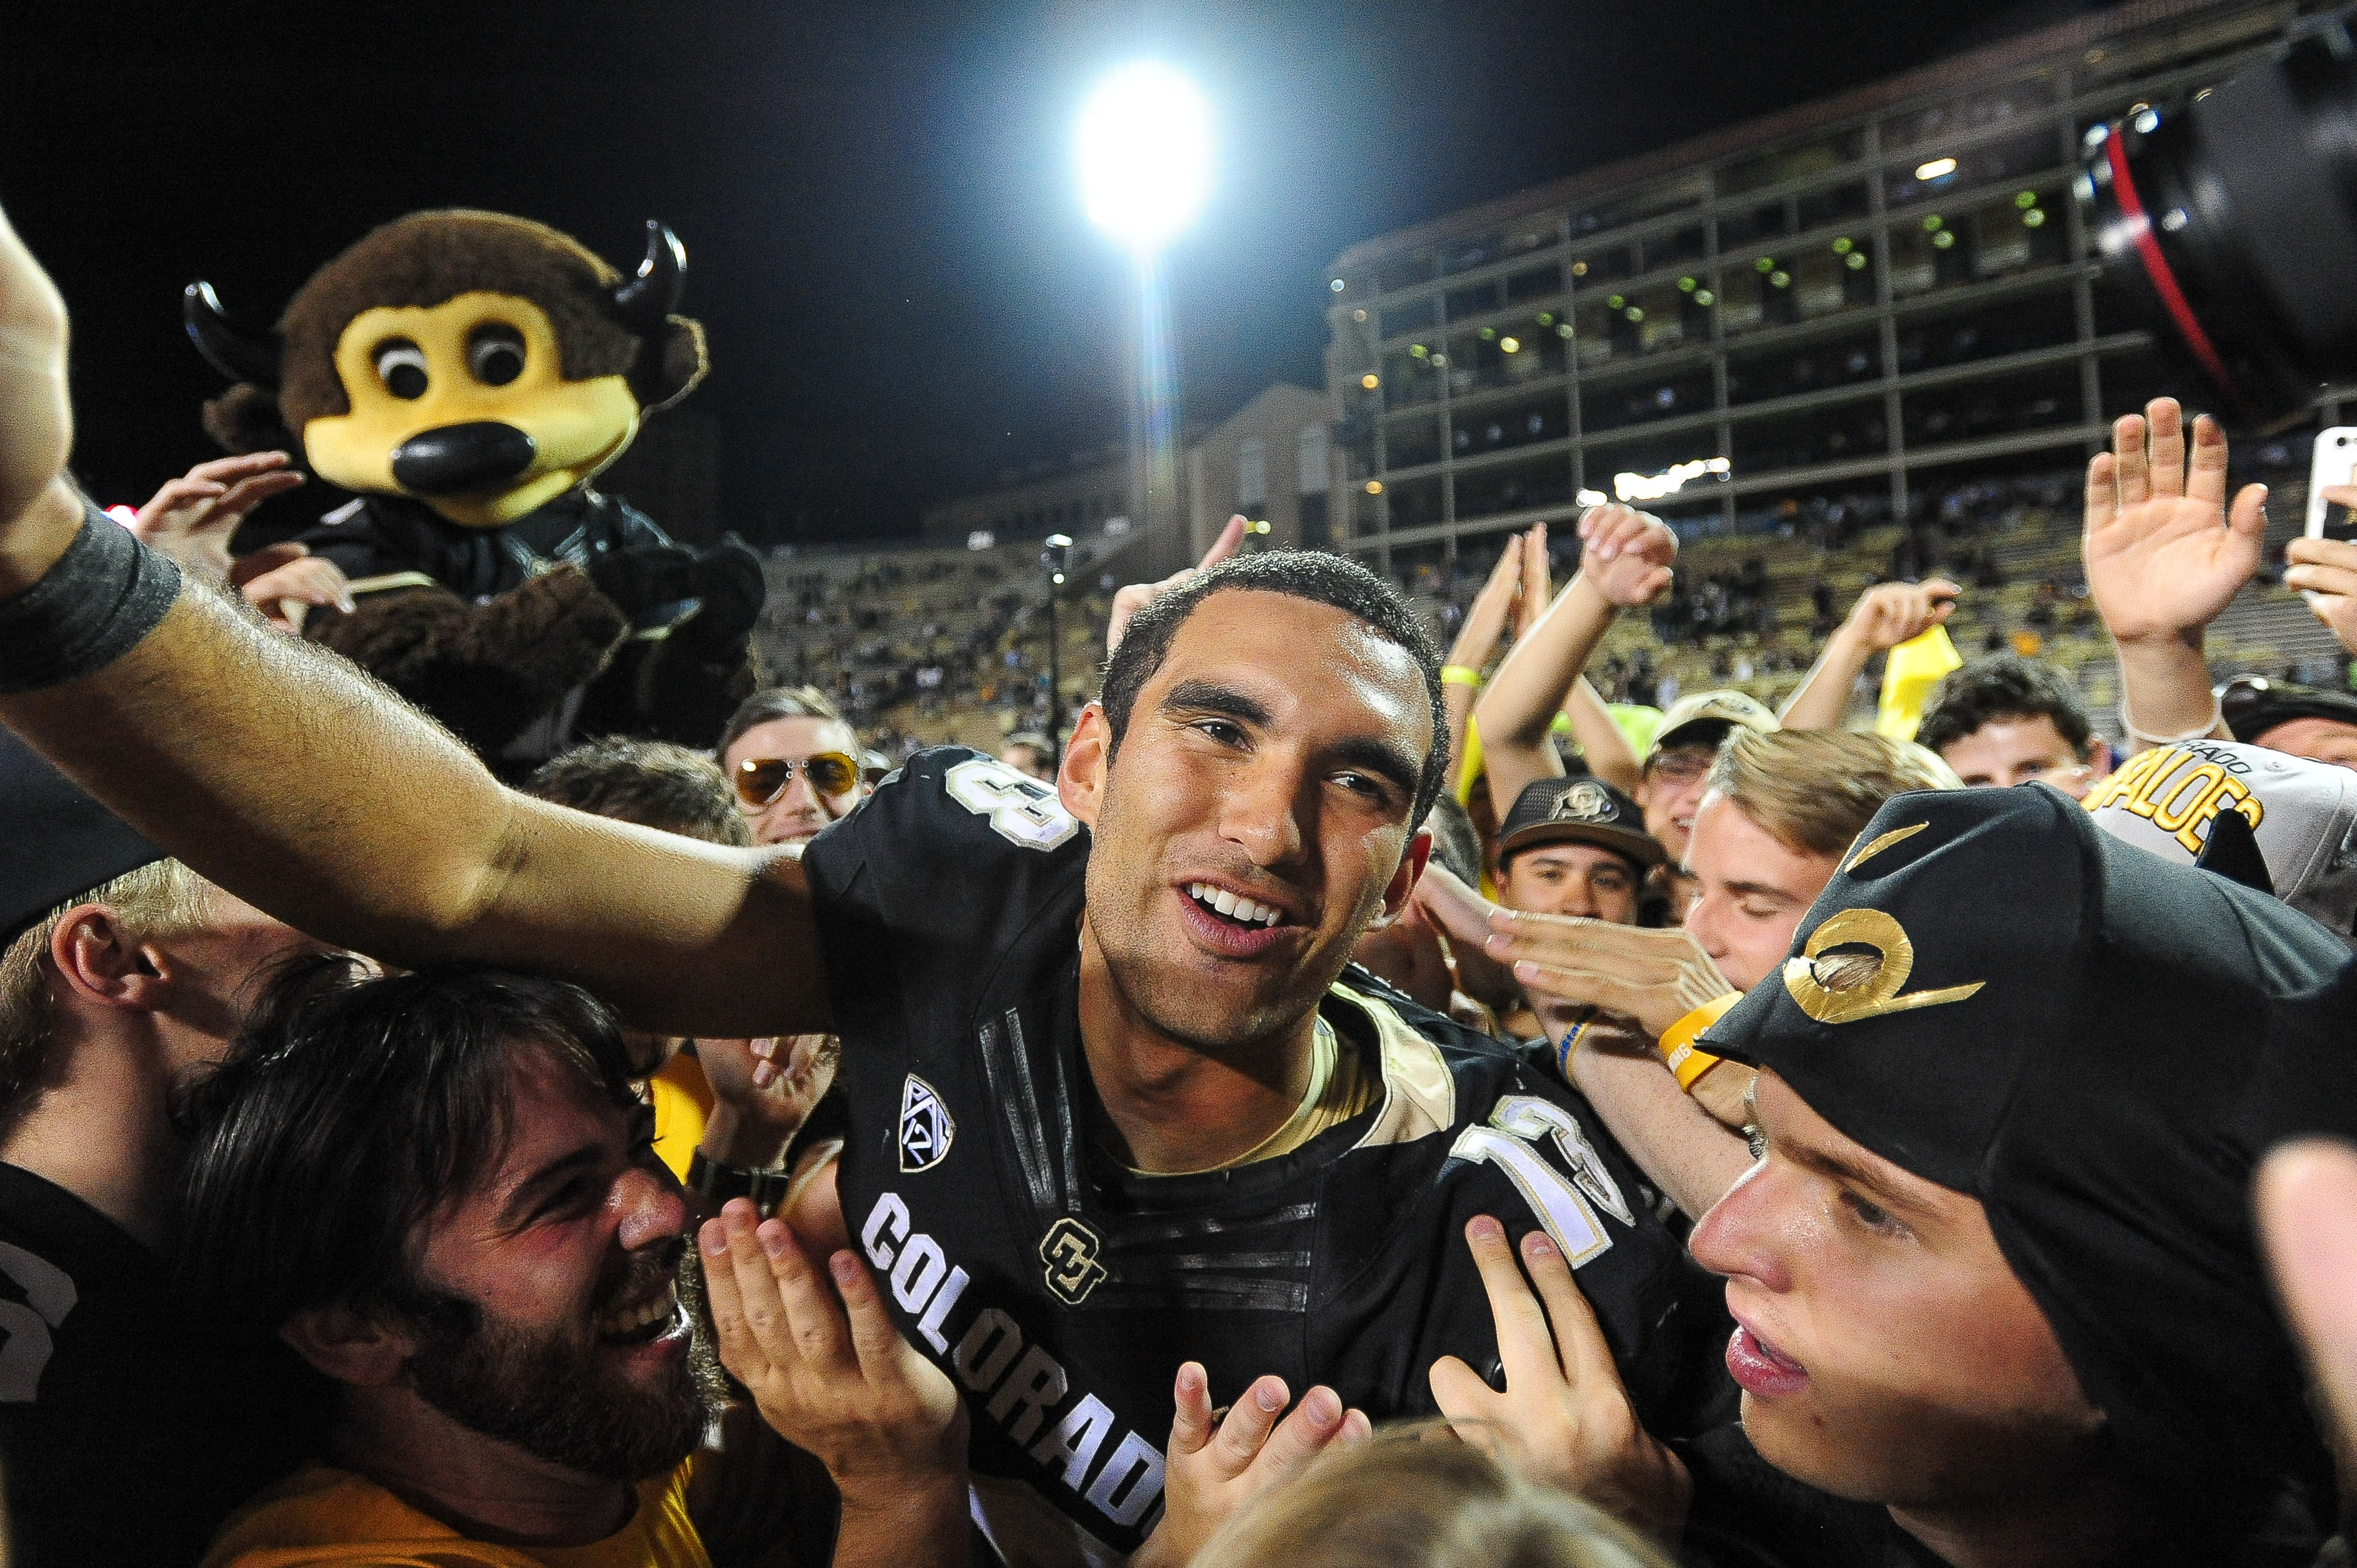 BOULDER, CO - OCTOBER 15: Colorado Buffaloes quarterback Sefo Liufau #13 celebrates with fans who had rushed the field after a 40-16 win over the Arizona State Sun Devils at Folsom Field on October 15, 2016 in Boulder, Colorado. (Photo by Dustin Bradford/Getty Images)